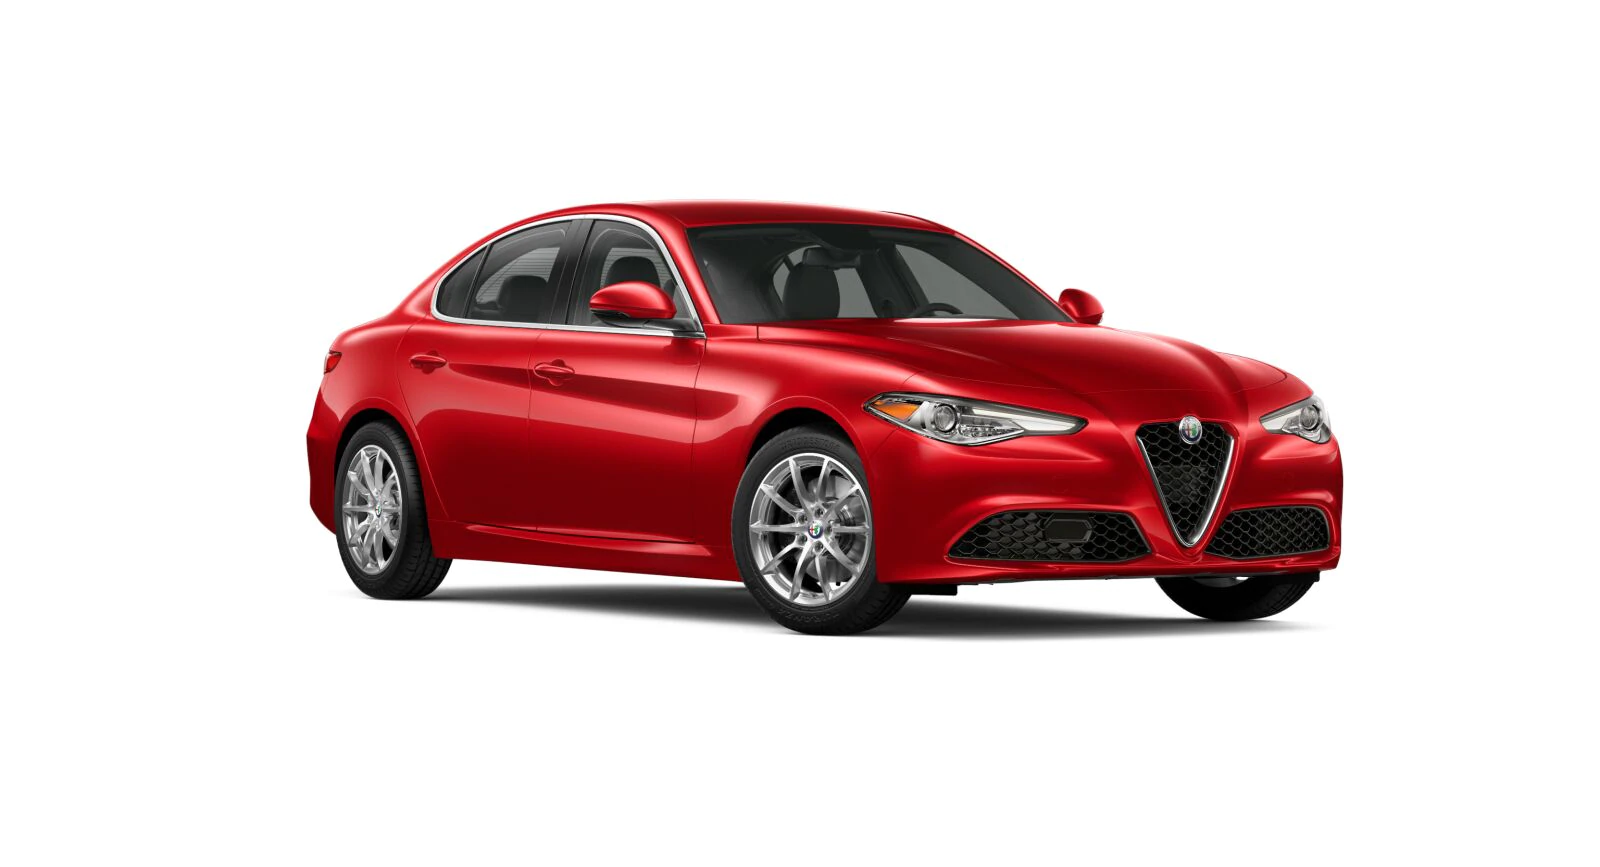 Alfa Romeo Models >> Alfa Romeo Models 2019 Alfa Romeo Car Suv Lineup In